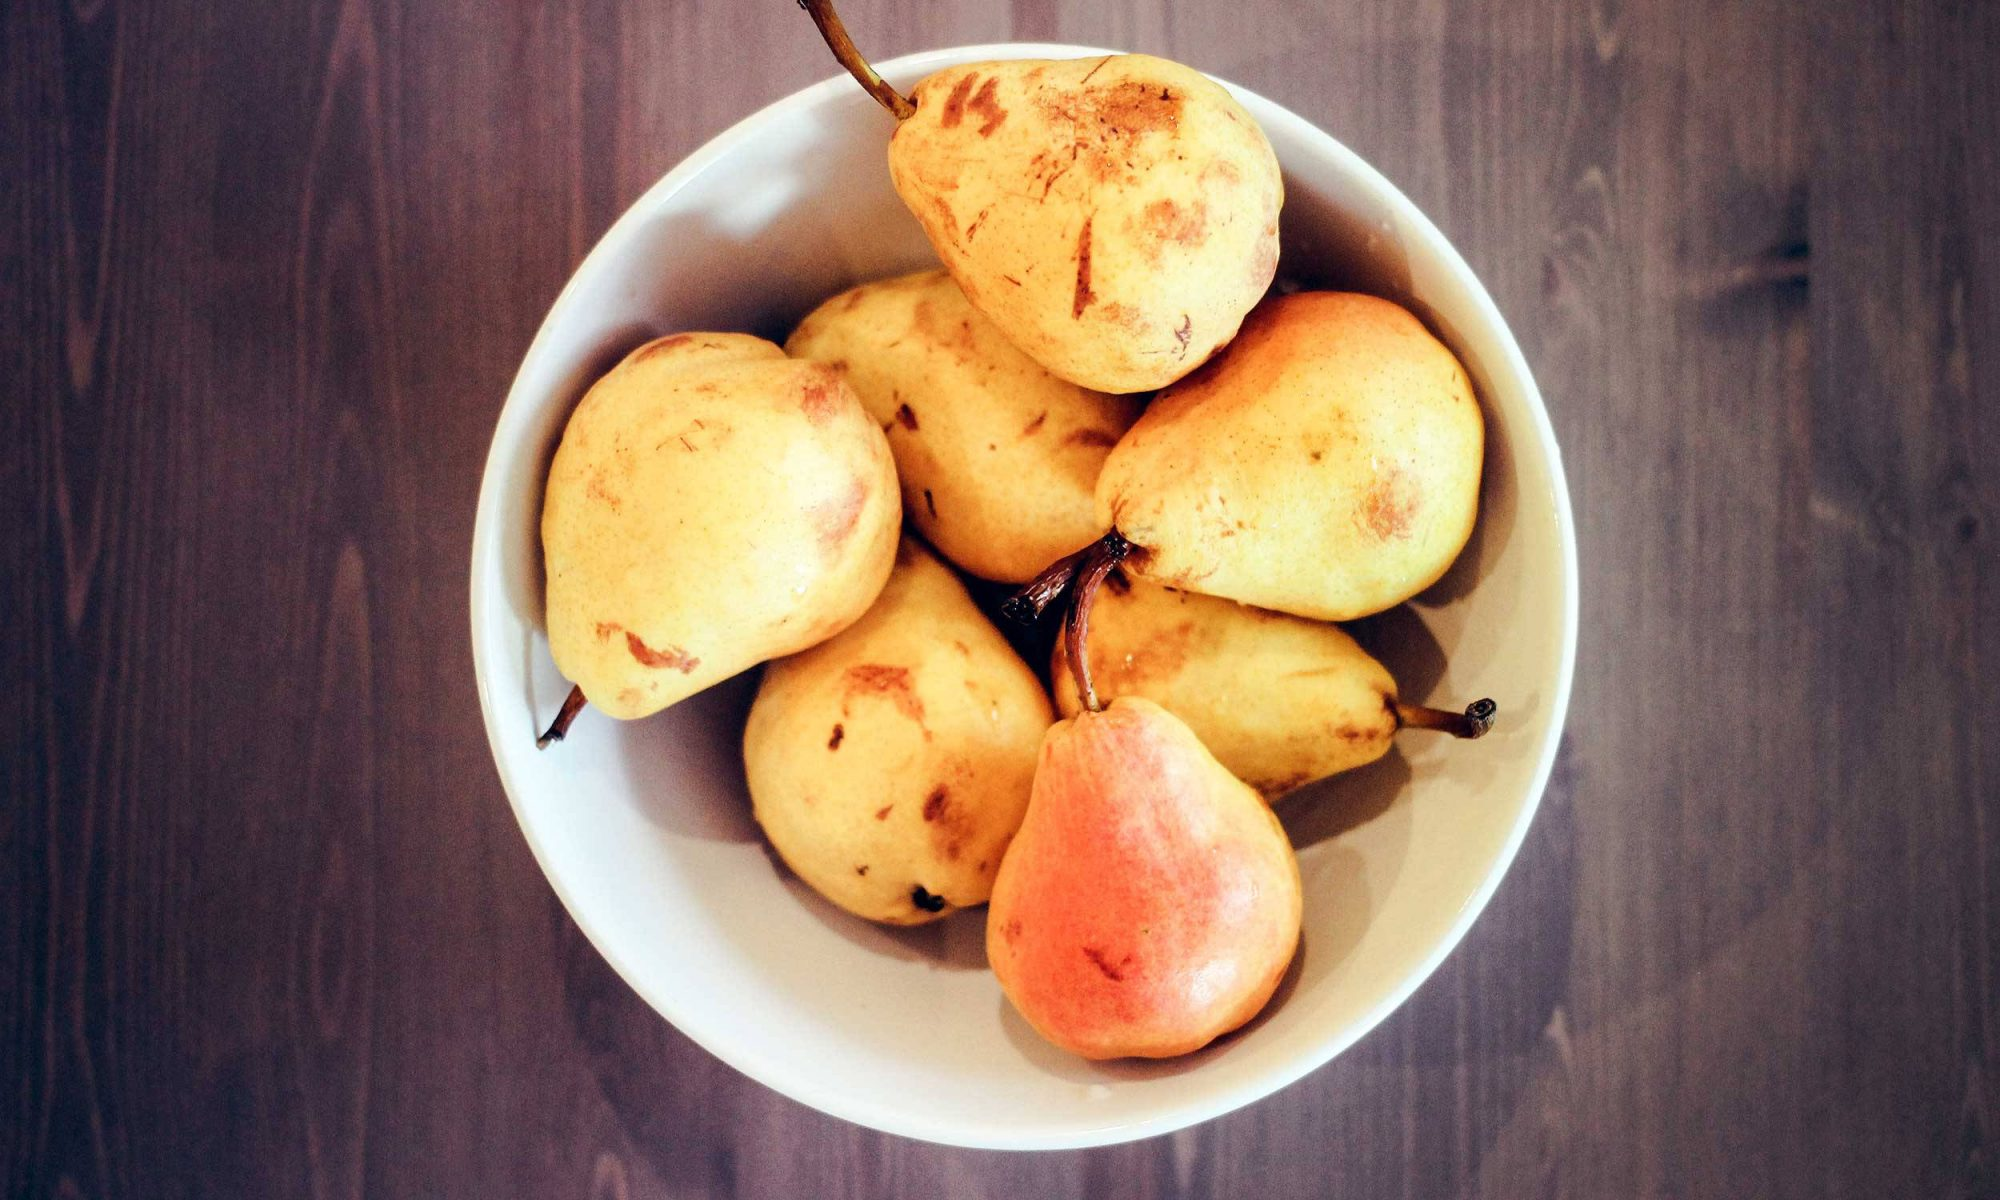 How to Store Pears So They Don't Get Mealy